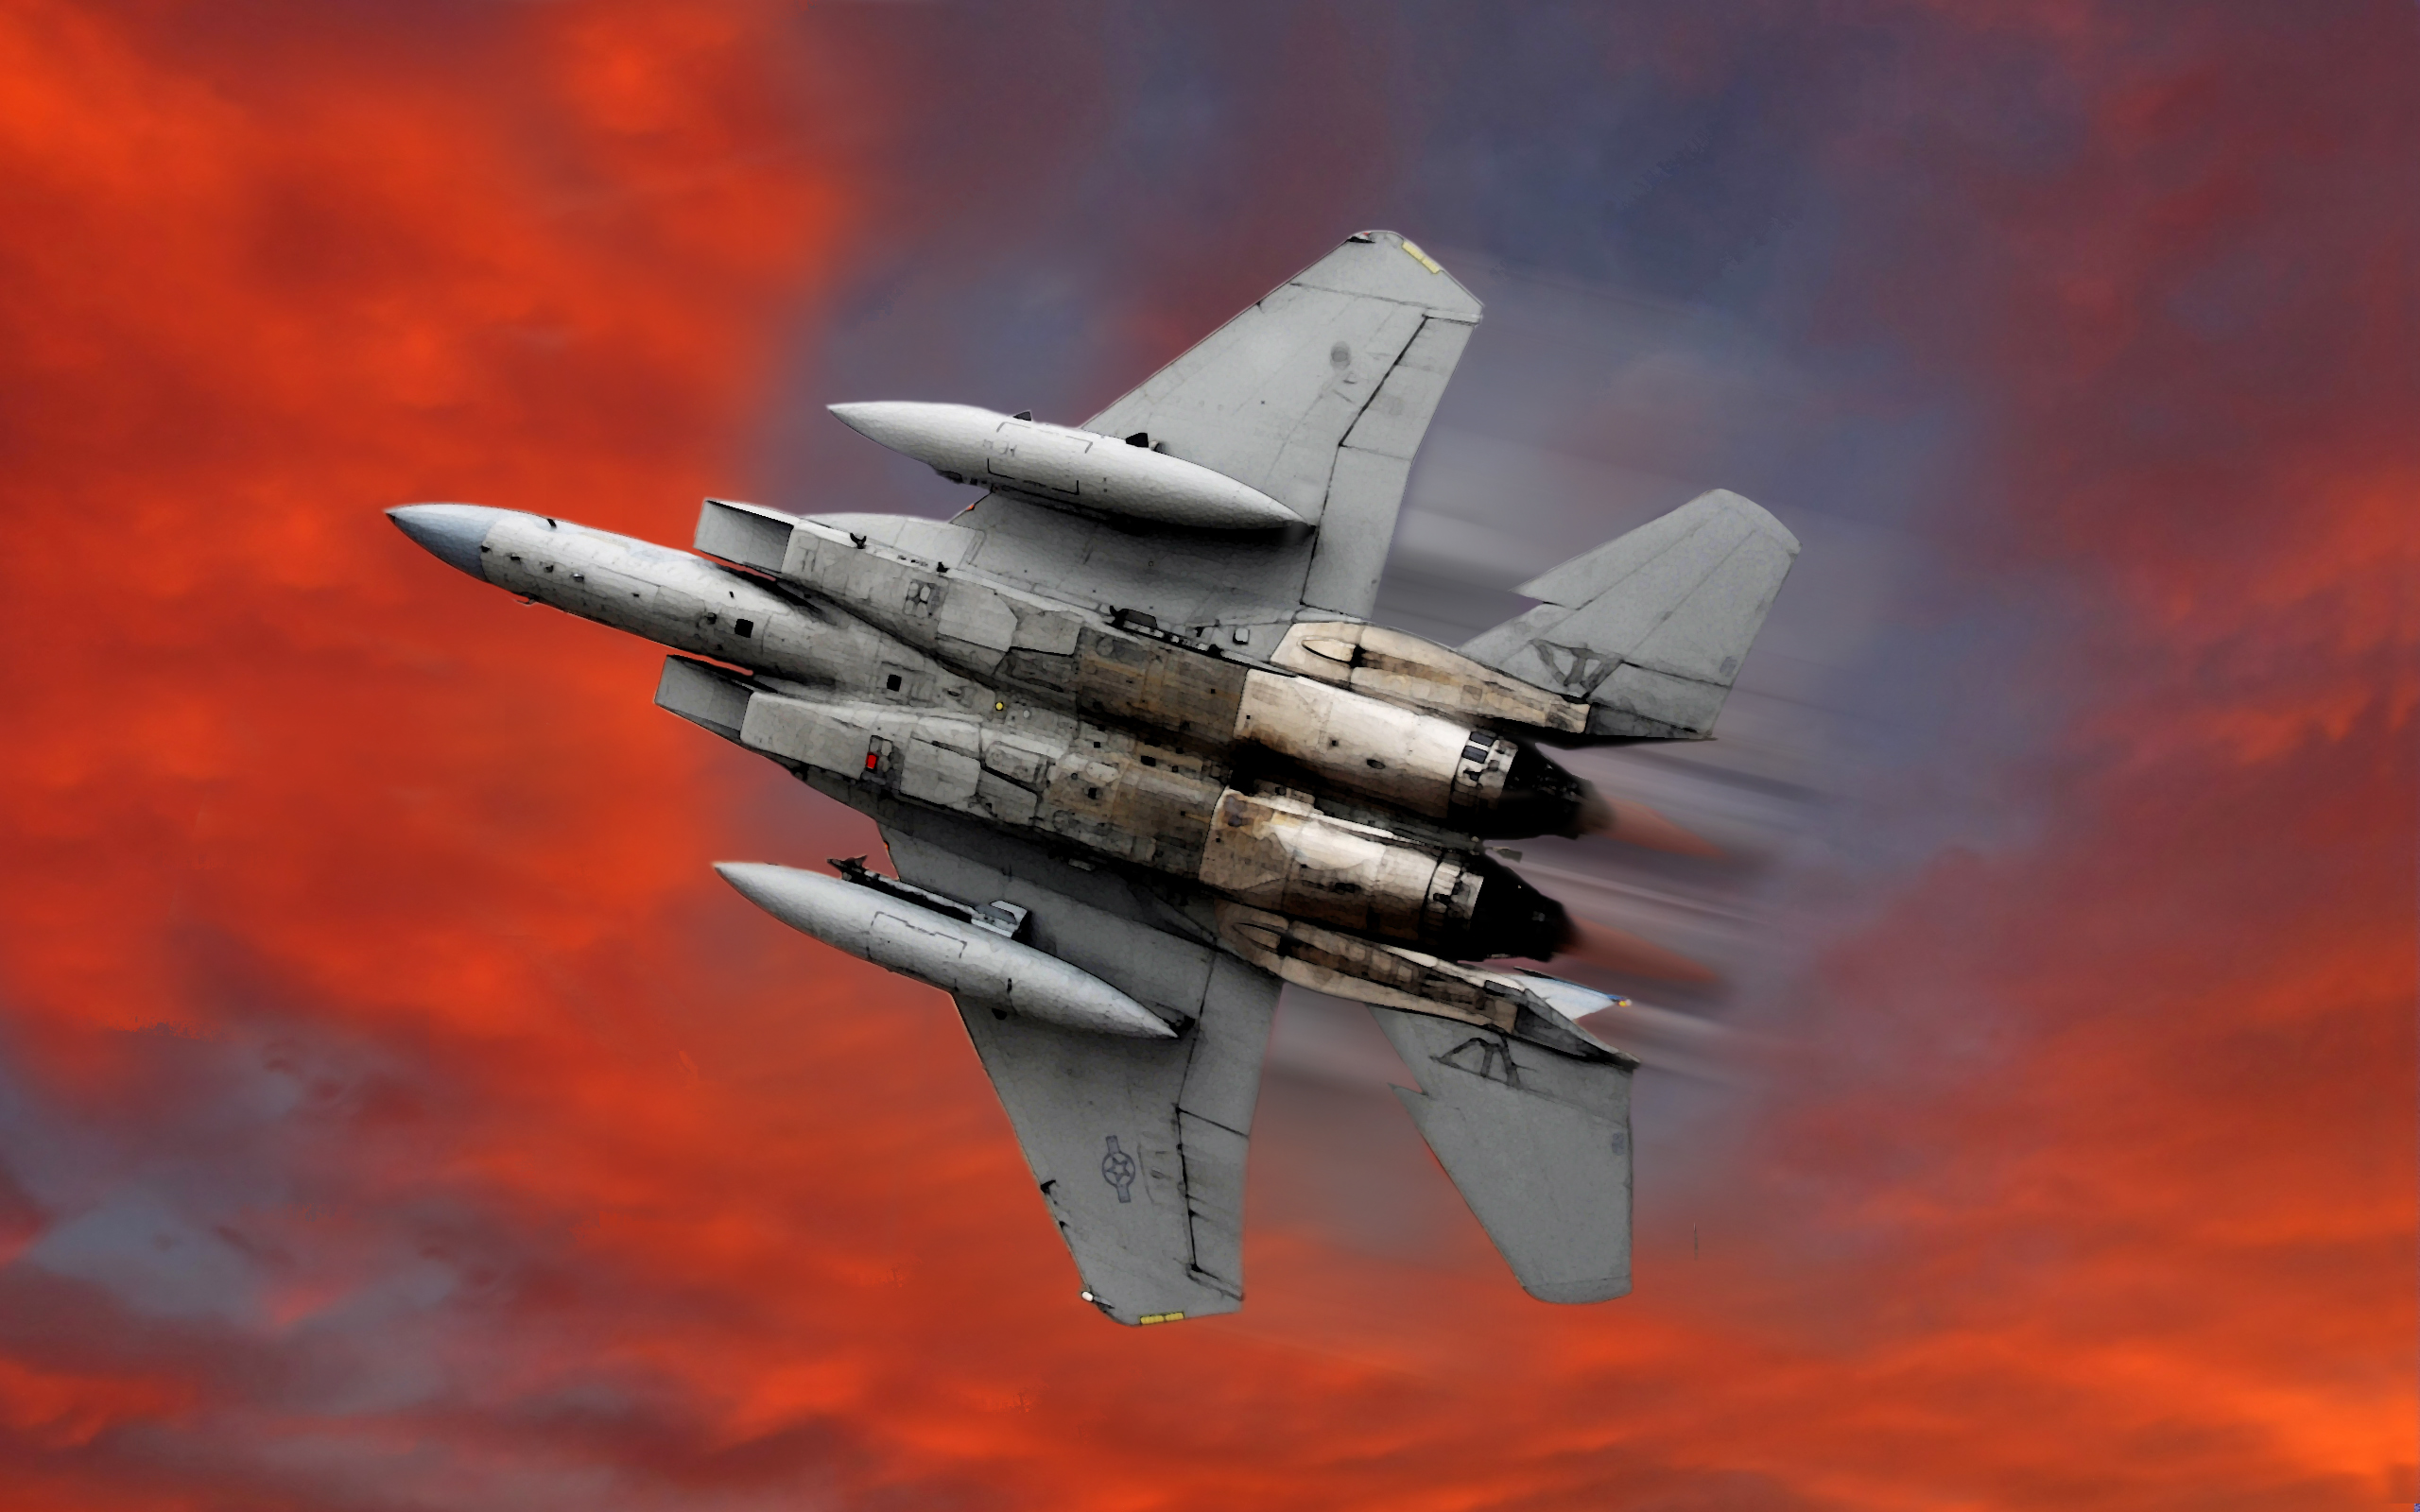 mcdonnell douglas f-15 eagle full hd wallpaper and background image